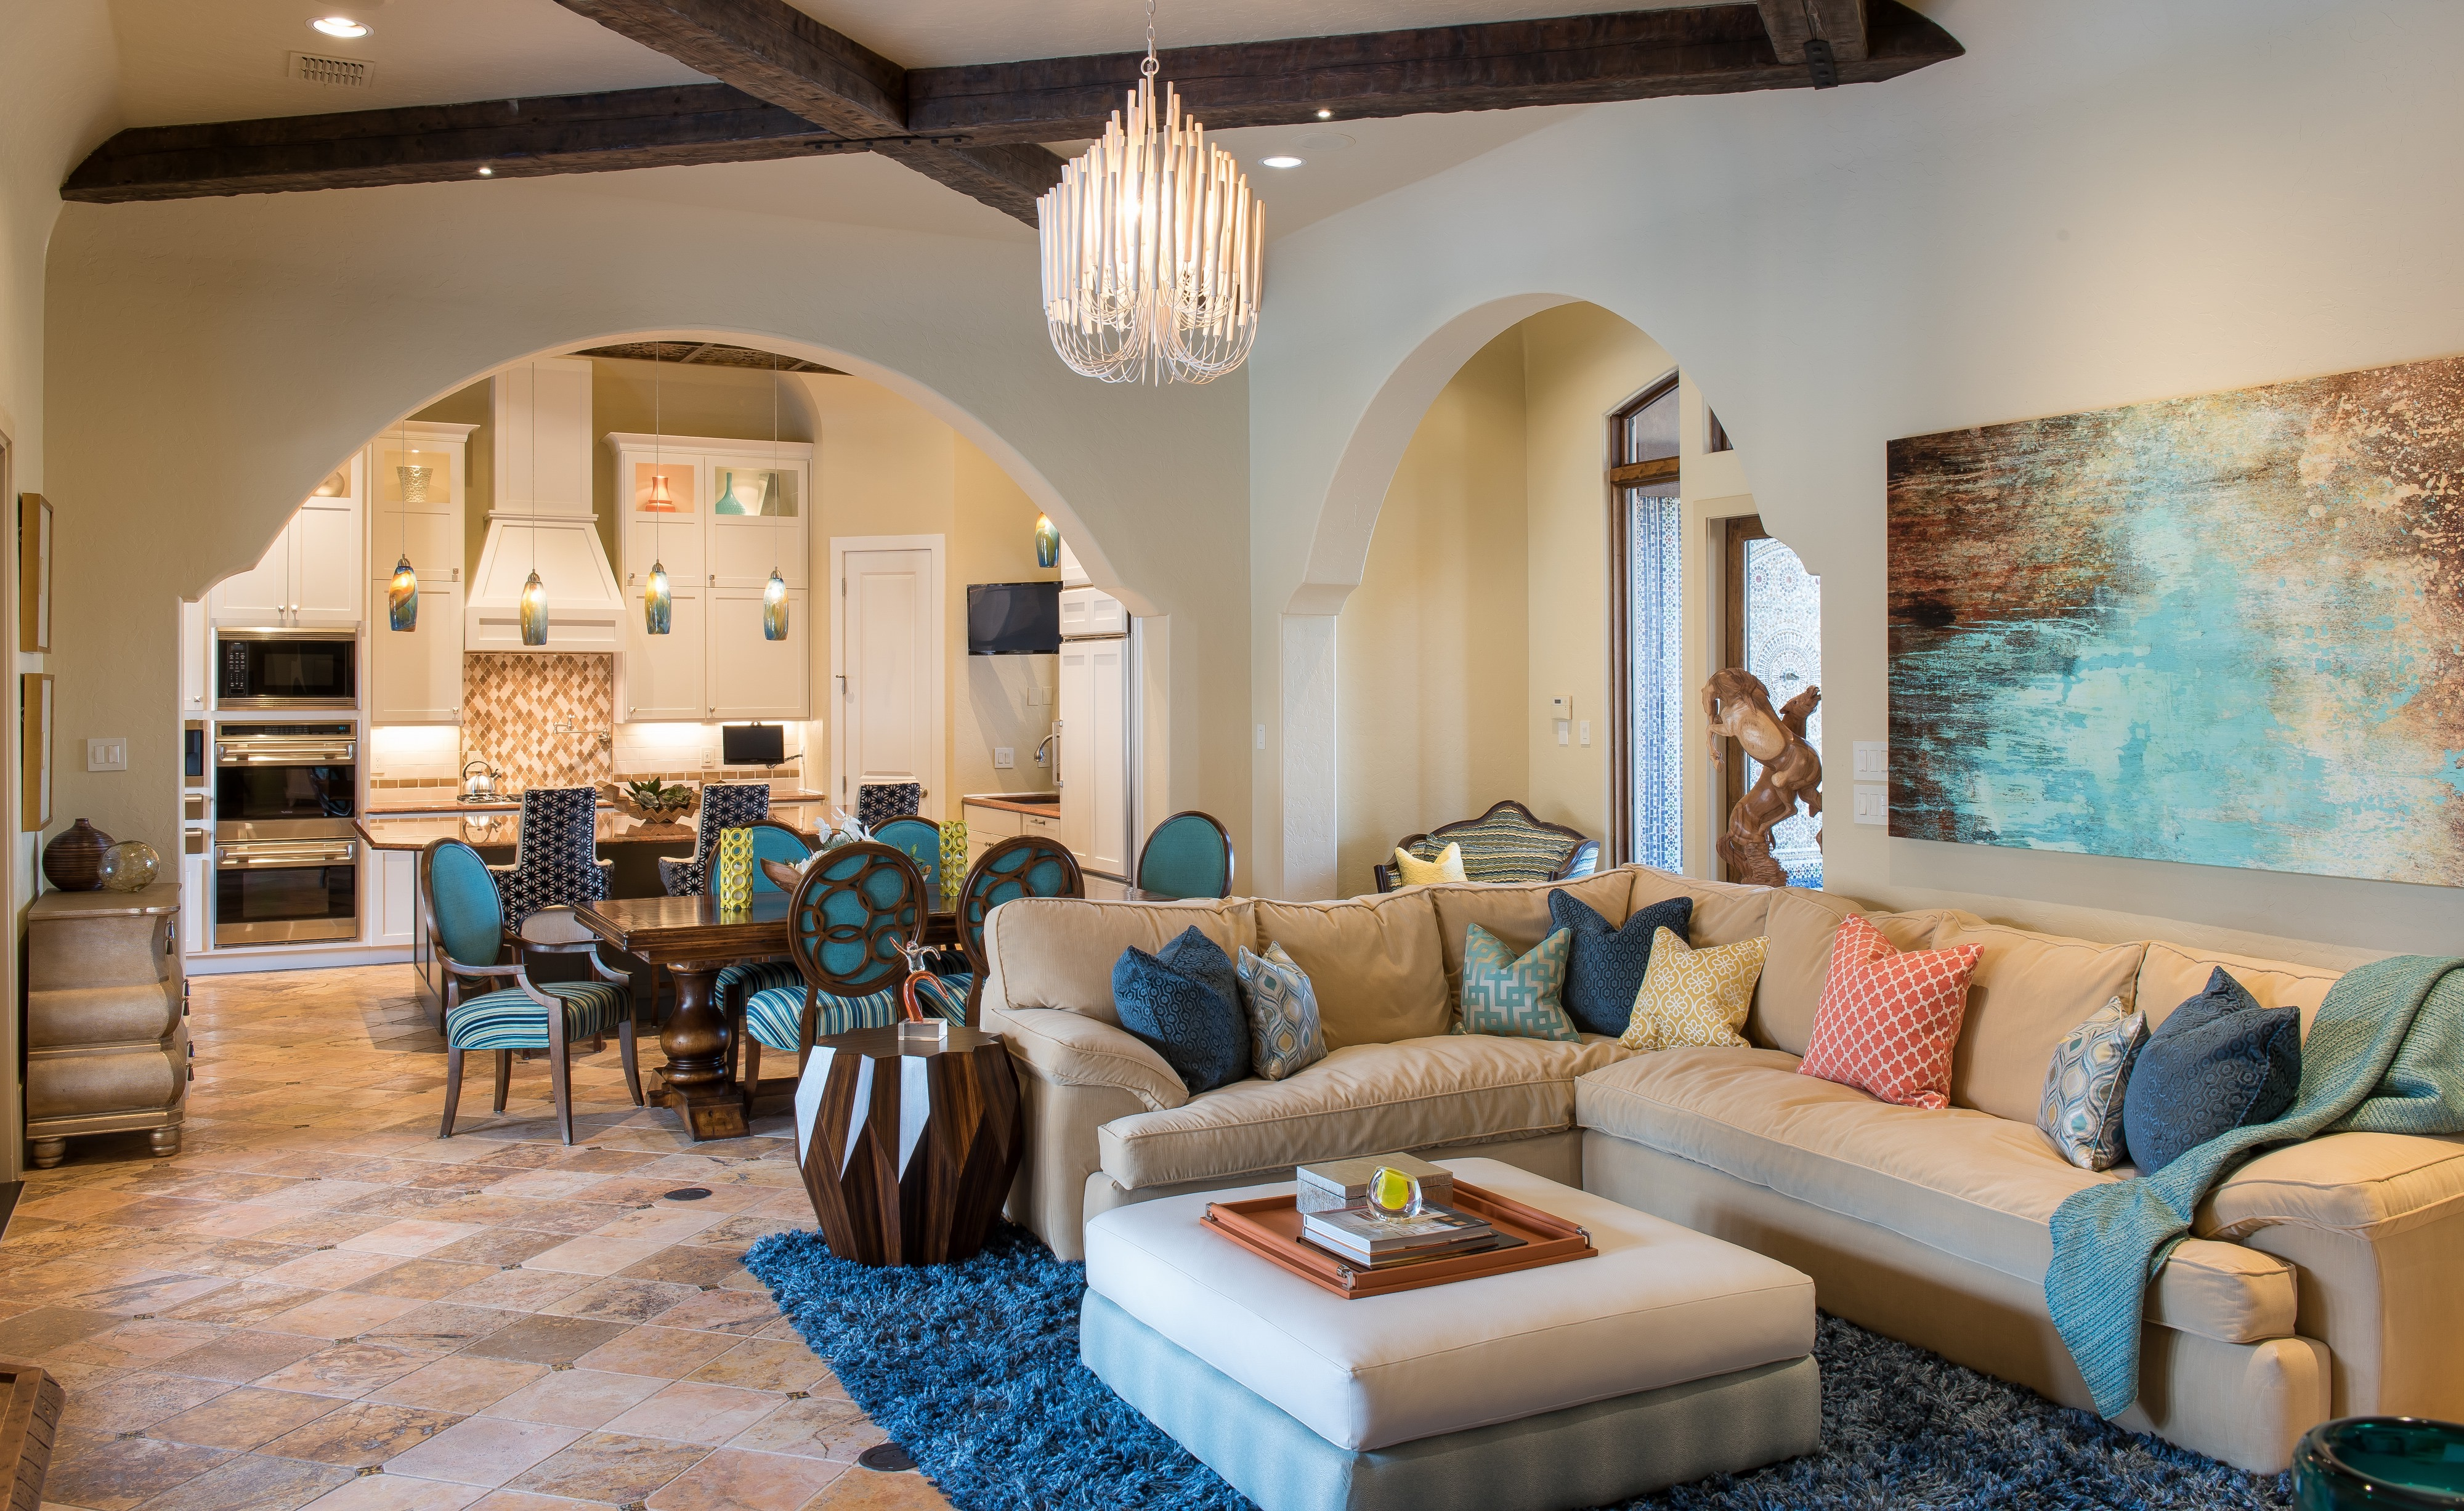 Moroccan Inspired Living Room And Dining Room Combo With Beige Sectional And Blue Accents (Image 13 of 25)